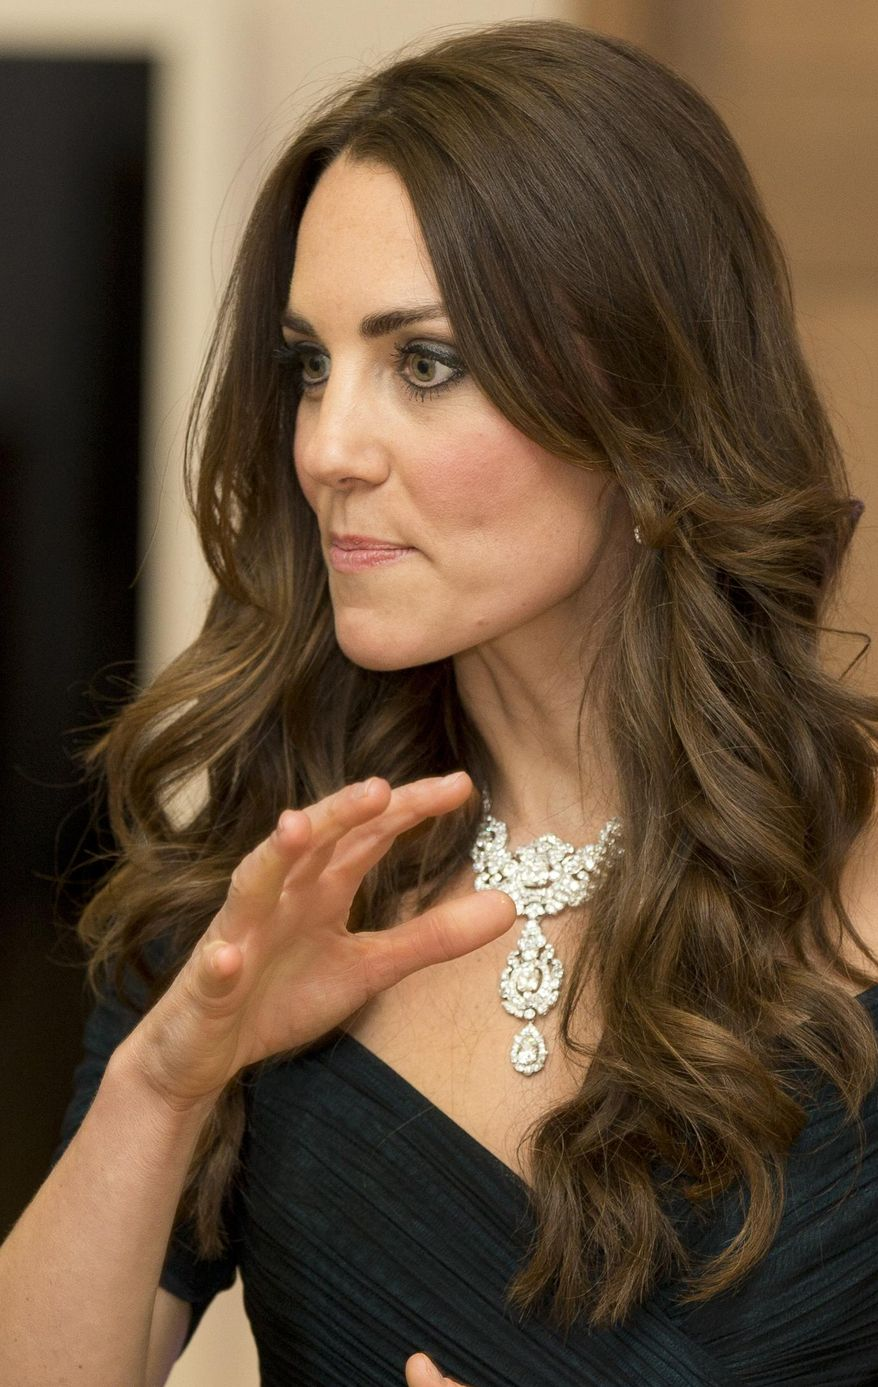 Kate Duchess of Cambridge talks to guests at a fund raising gala at theNational Portrait Gallery in London, Tuesday, Feb. 11, 2014. . The Duchess is wearing a dress by British designer Jenny Packham and a necklace on loan from Queen Elizabeth II that was given to the Queen as a gift for her wedding in 1947. (AP Photo/Alastair Grant, Pool)